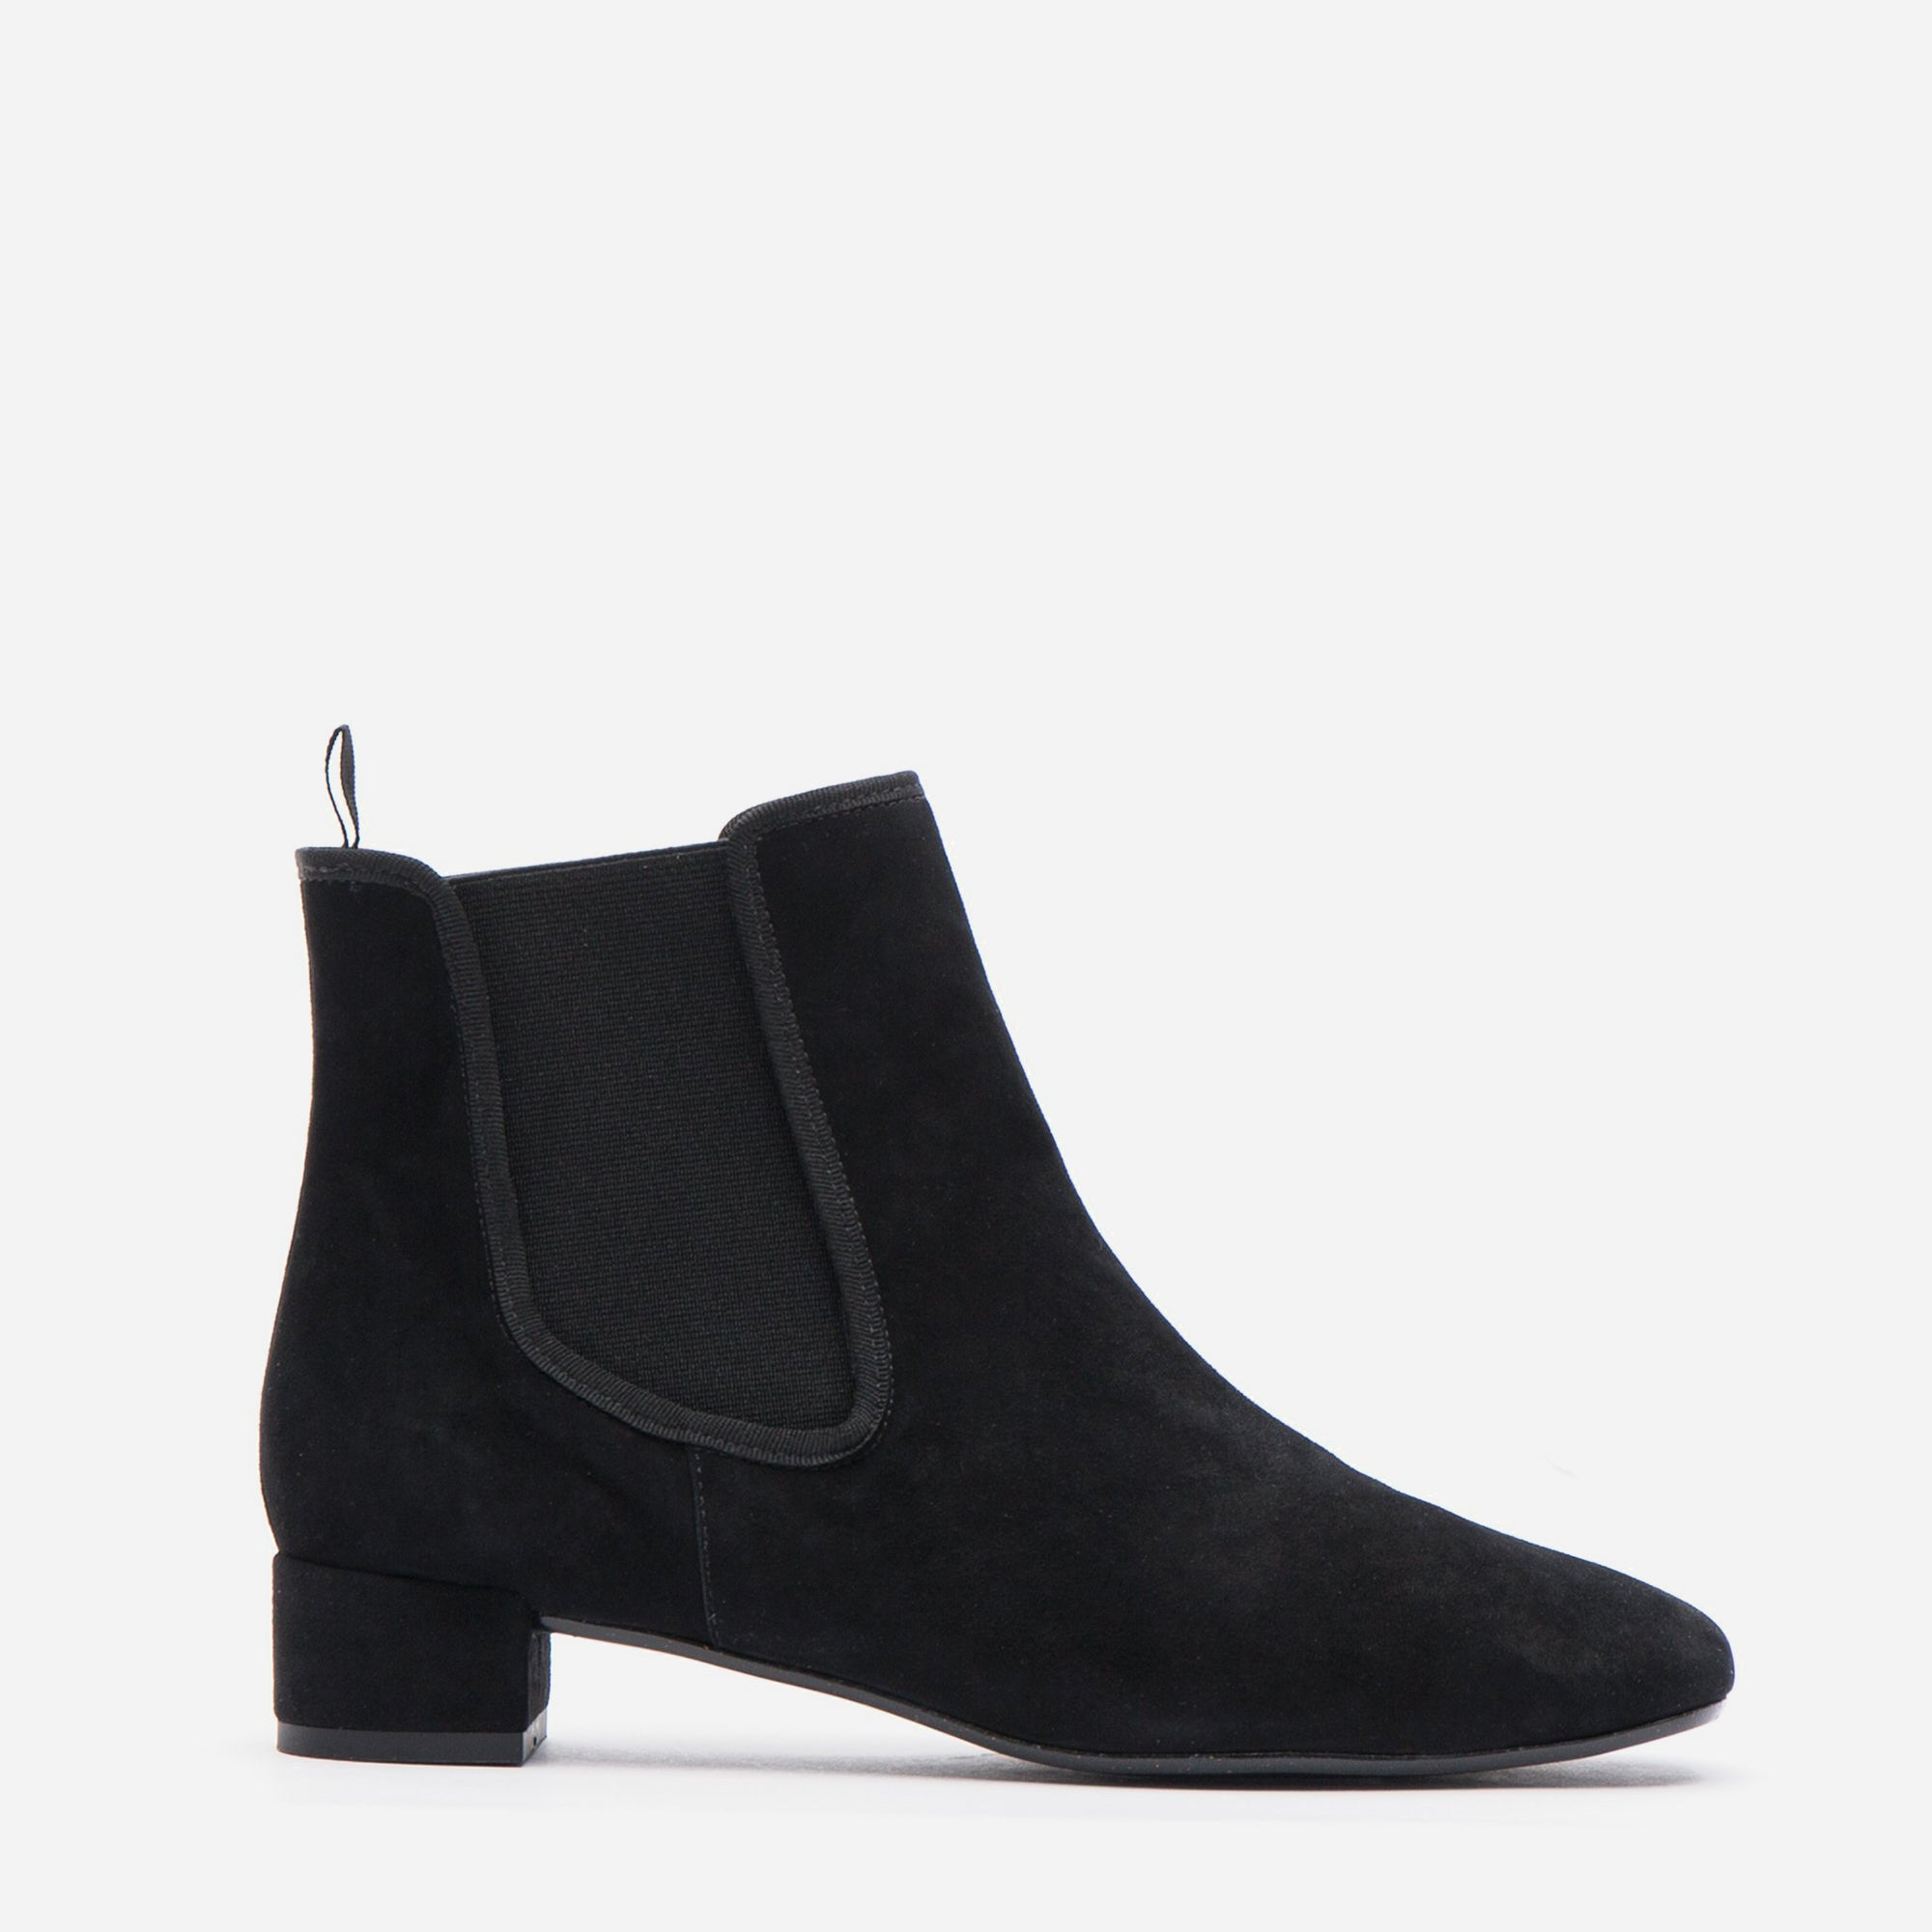 Milly Suede Boots Black